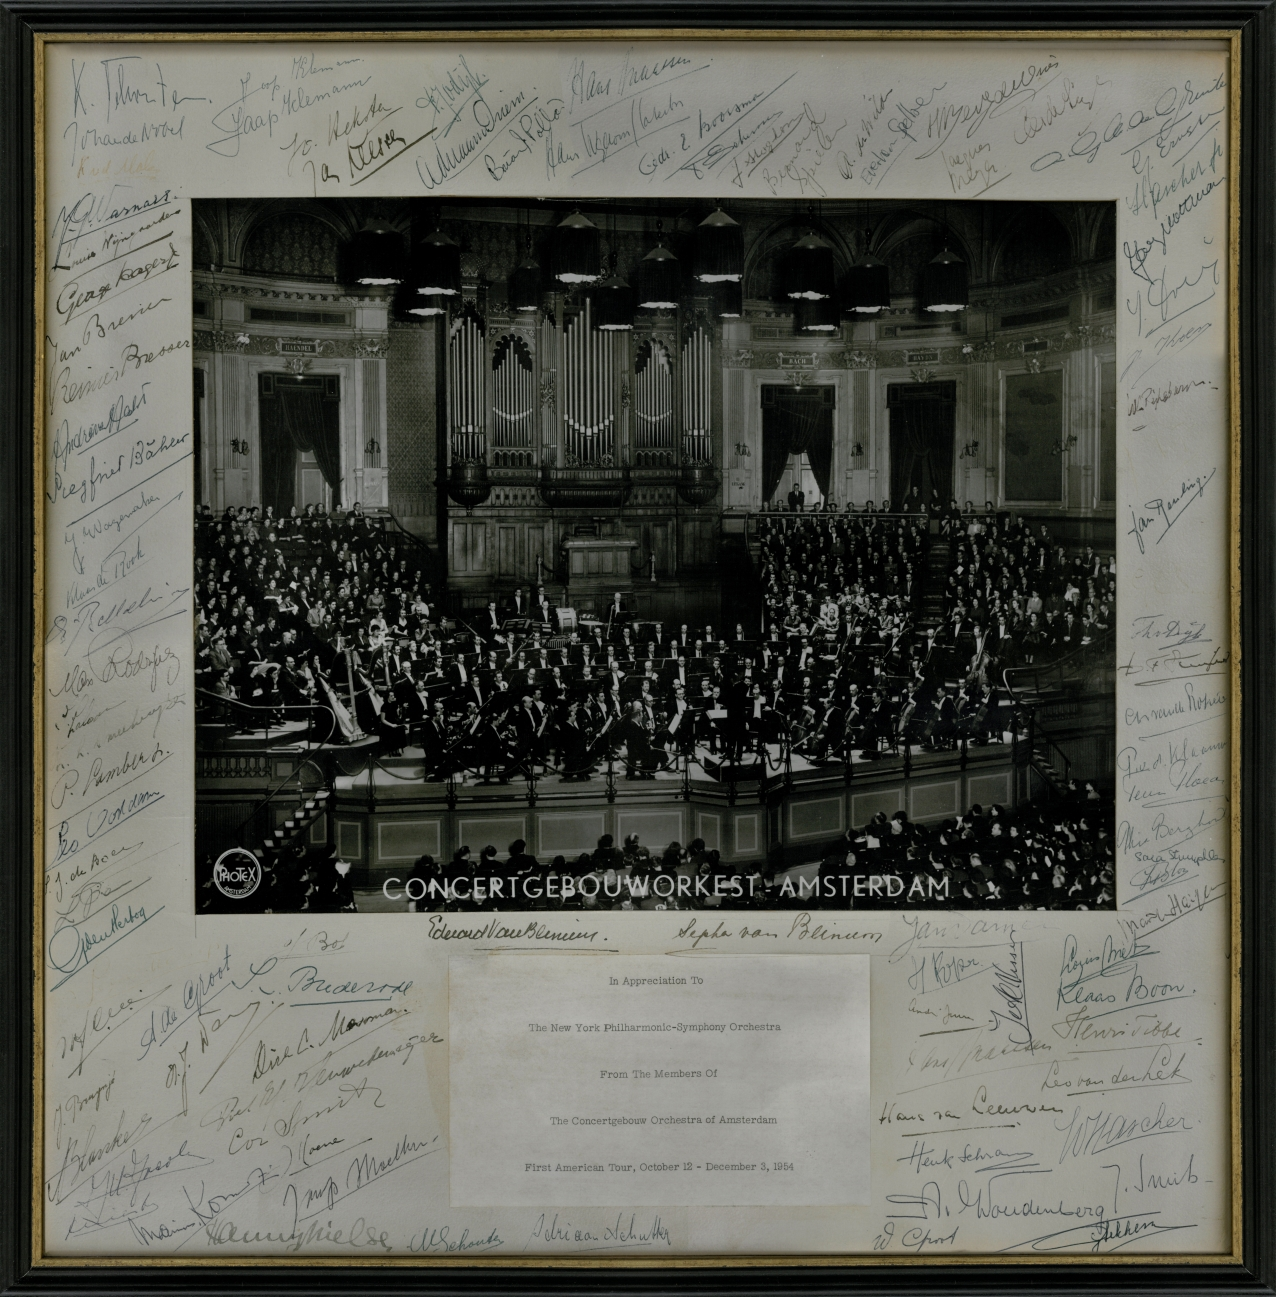 A portrait of the Royal Concertgebouw Orchestra, autographed by the musicians and conductor Eduard van Beinum